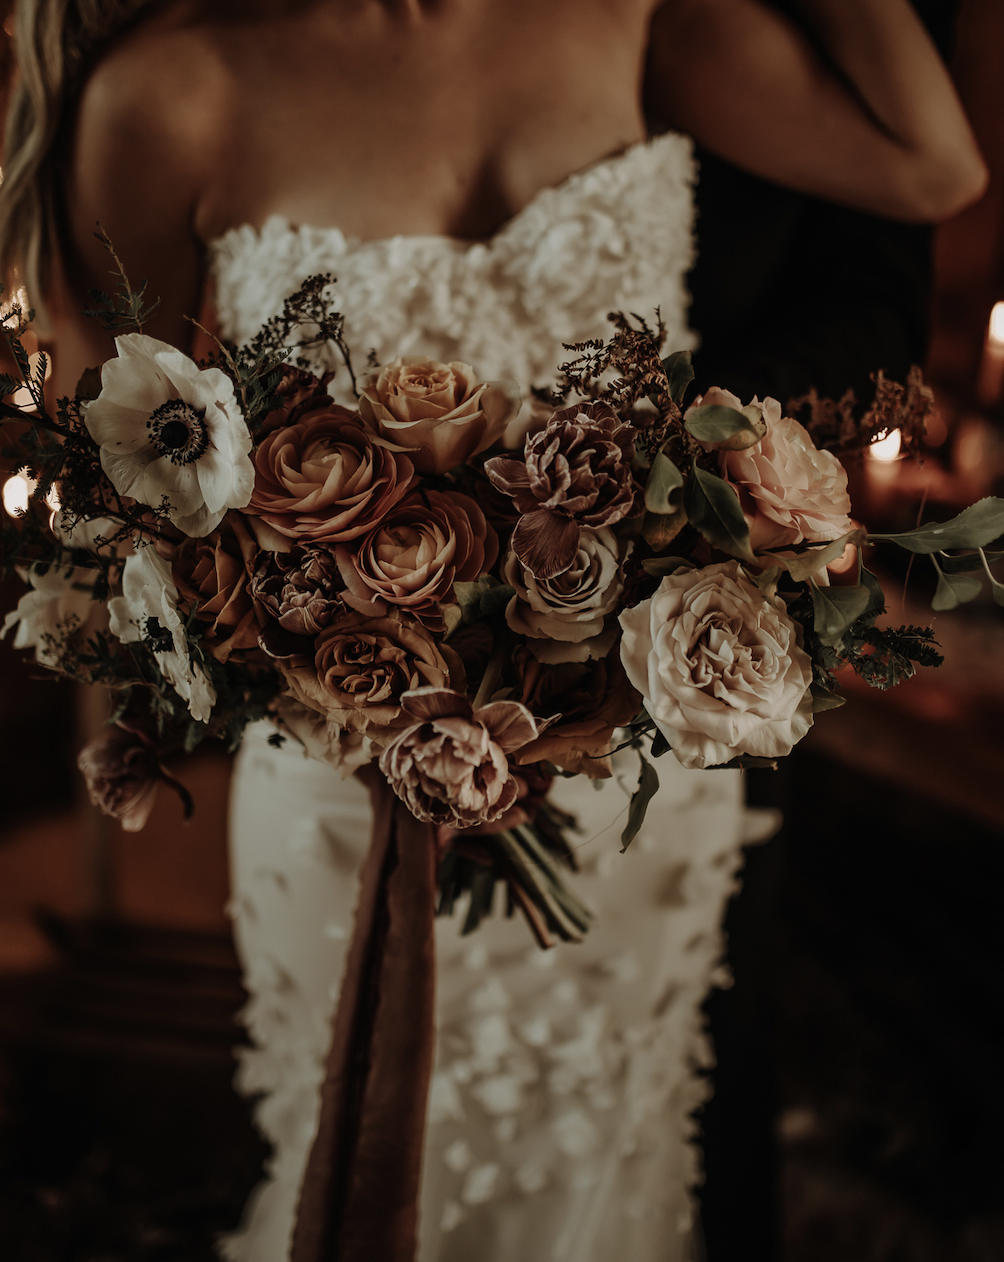 A style all her own - Emma Cox Floristry